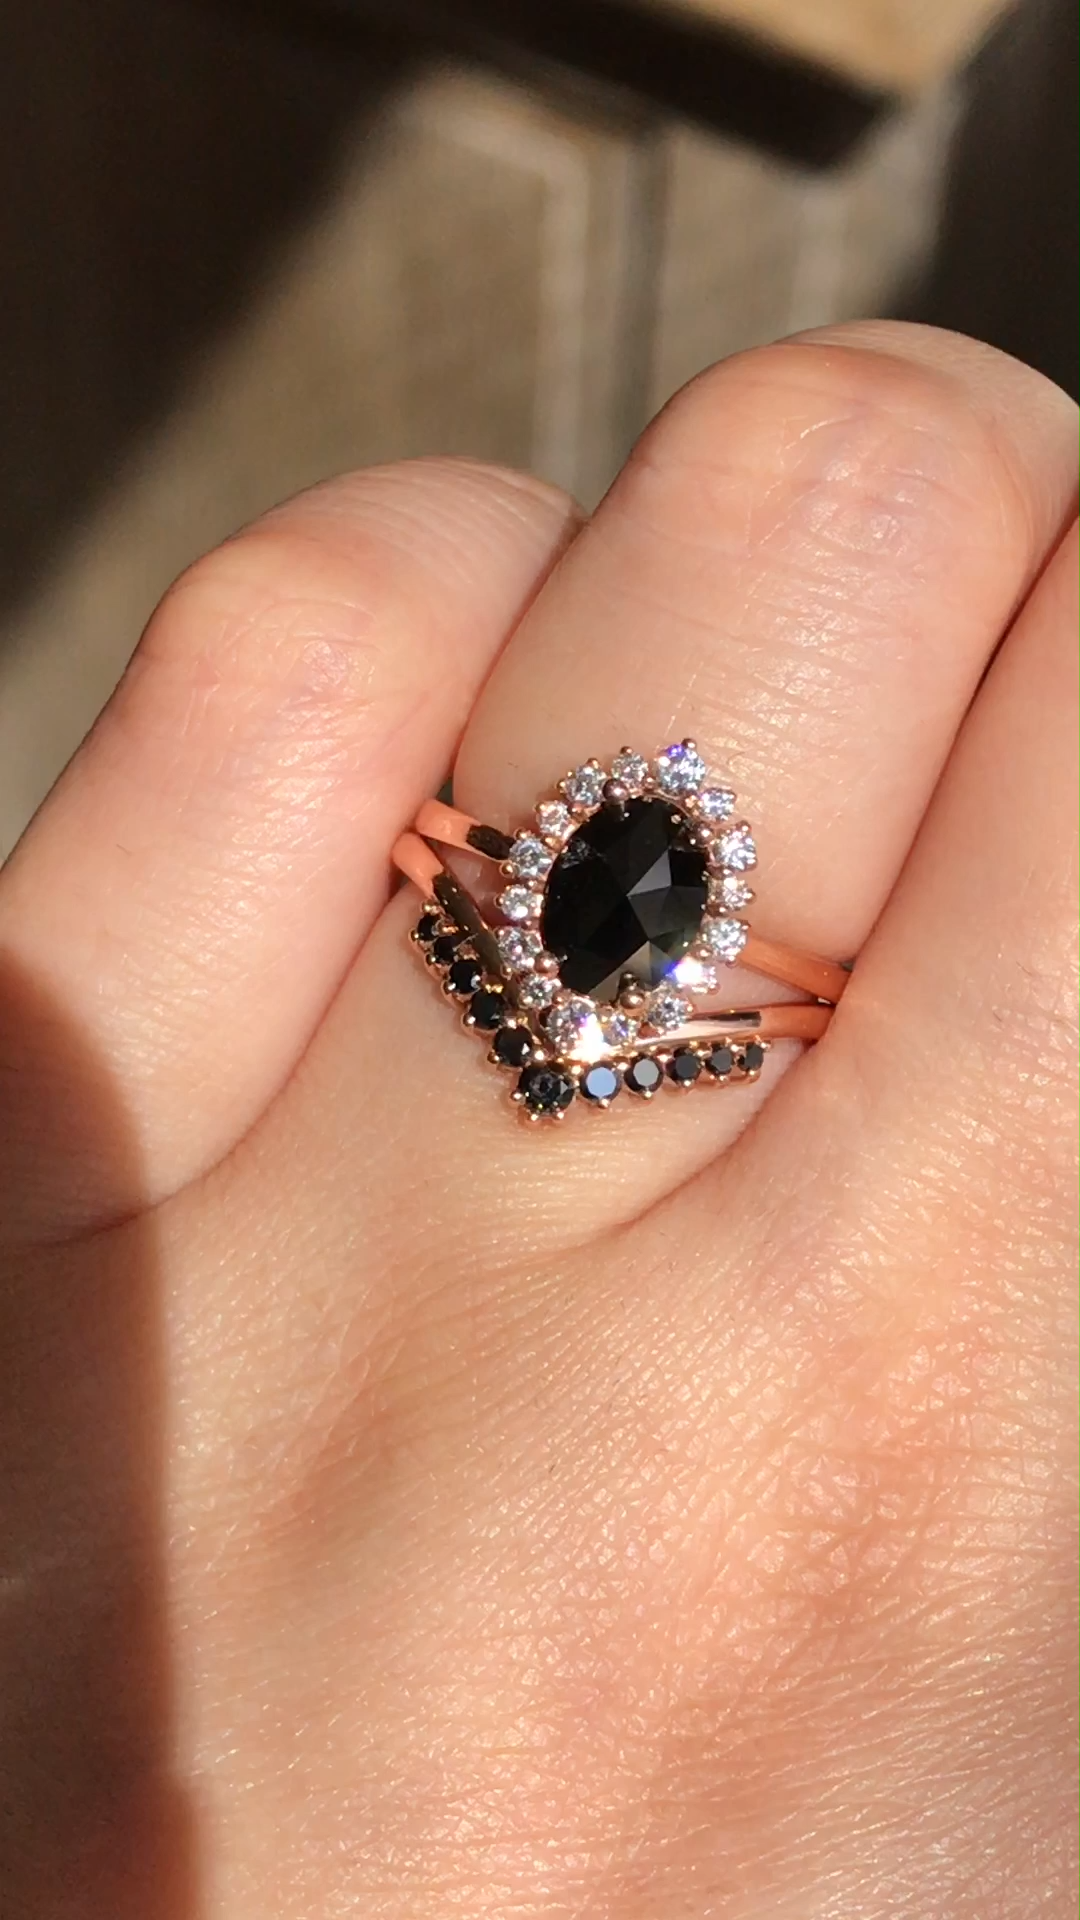 We're obsessed with Black Diamond Styles! Whether it's in wedding bands or mixed with white diamonds in a Halo Engagement Ring like this, we can't stop! See more from our Black Diamond Ring collection ~